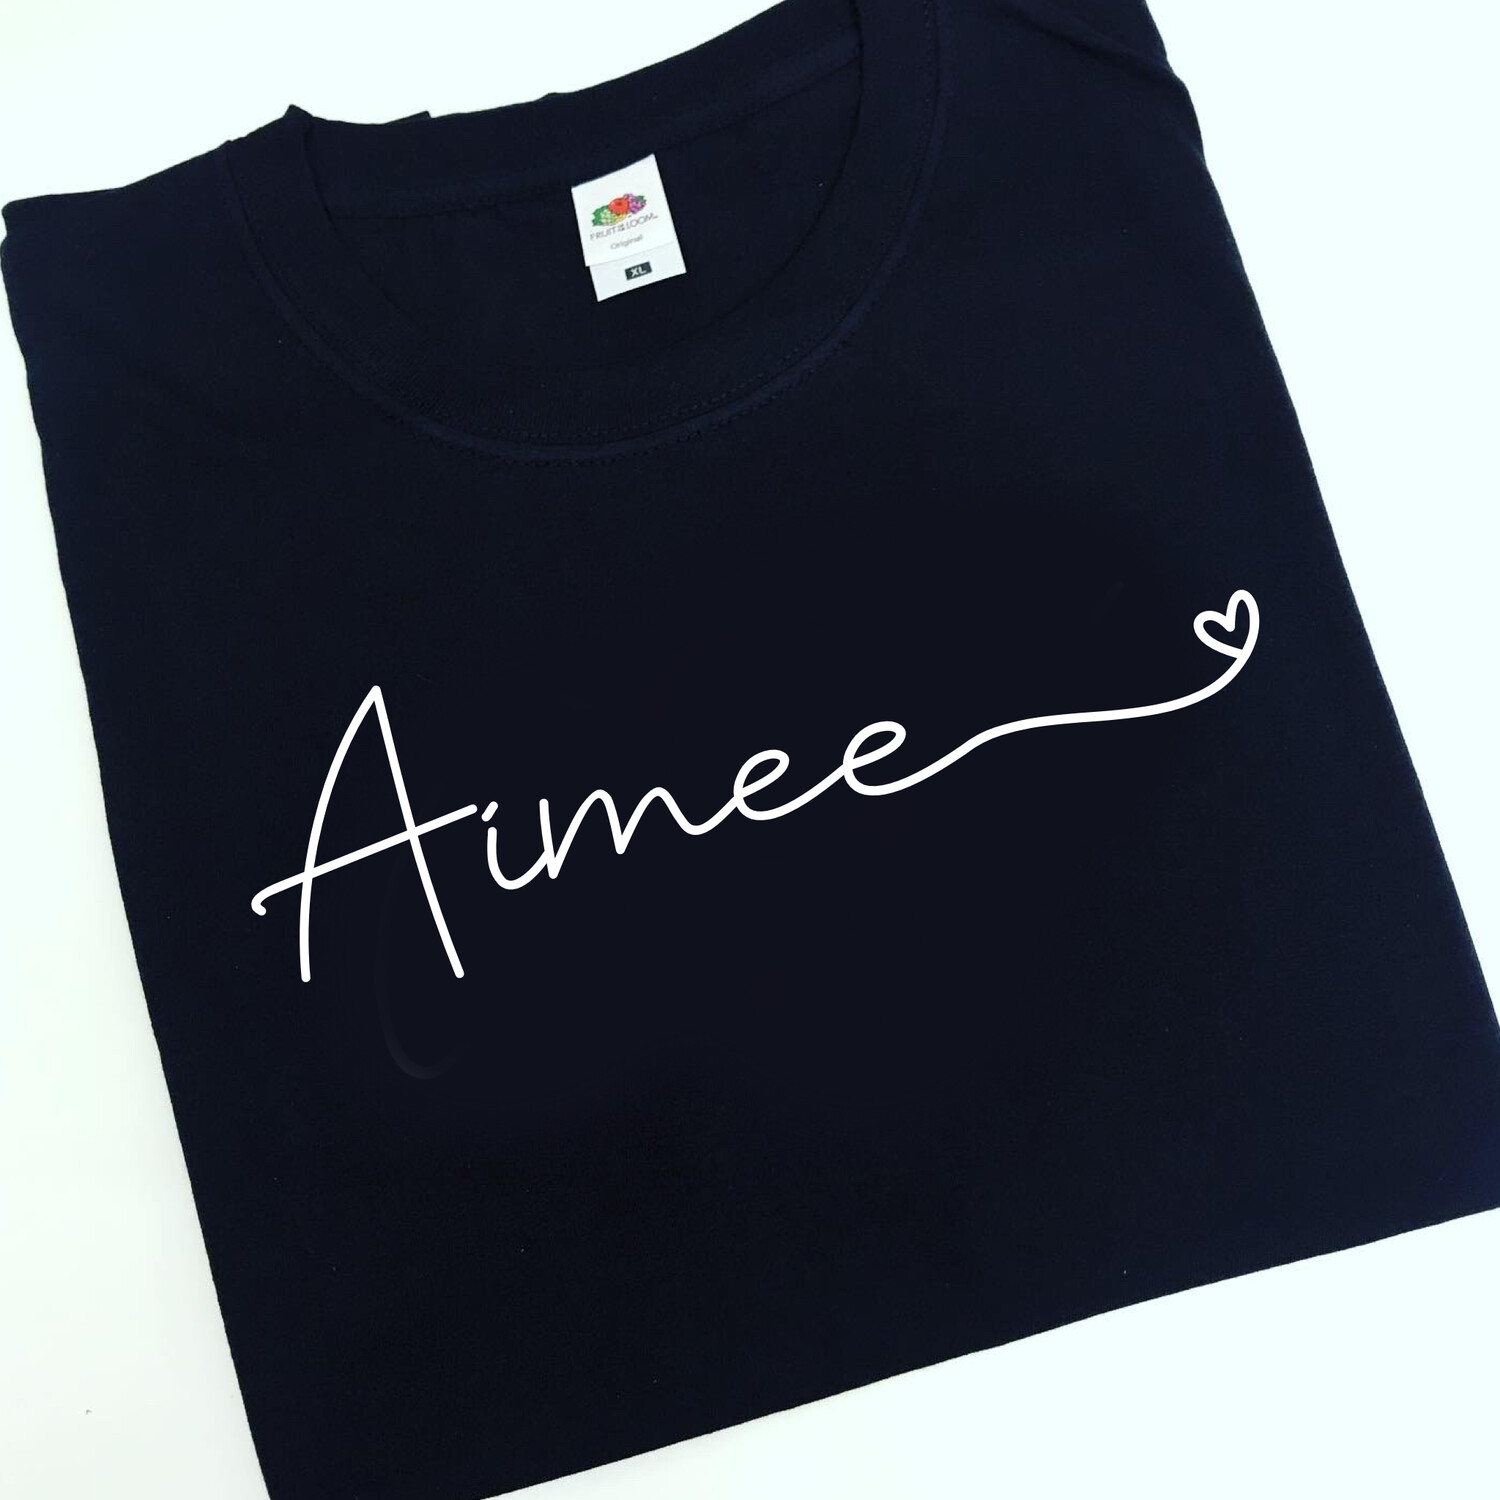 Name swirly heart T-shirt